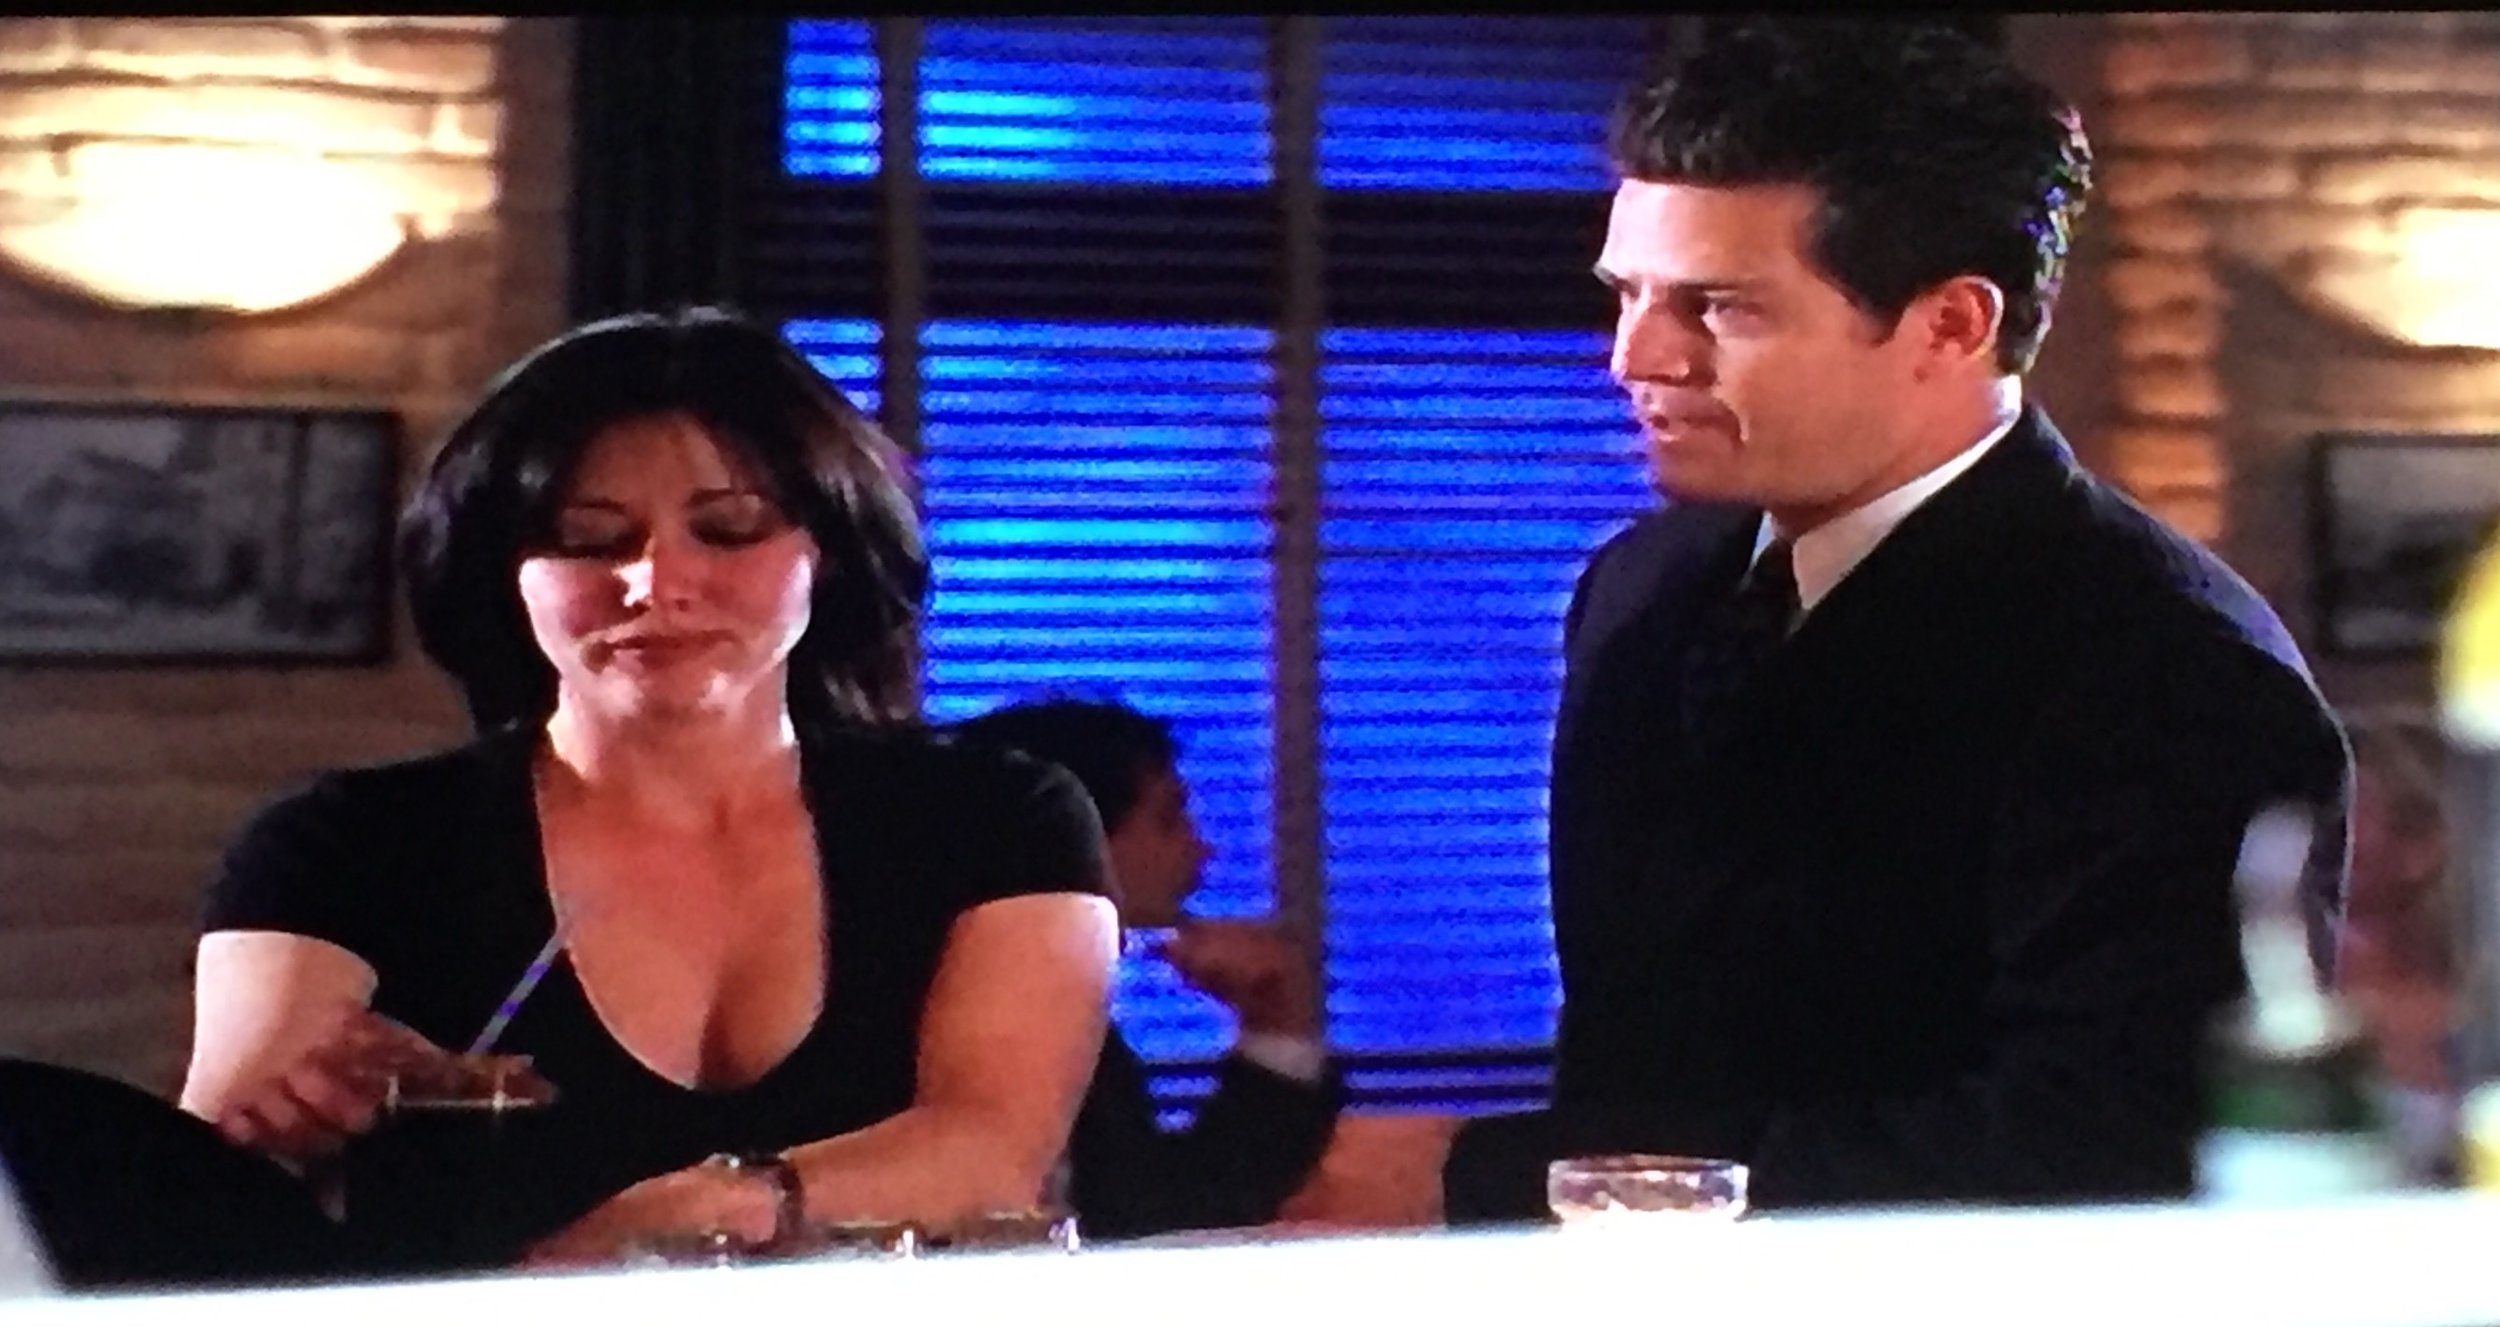 """We get to see what Prue's """"usual"""" drink is, as well as seeing Andy's nice suit!"""